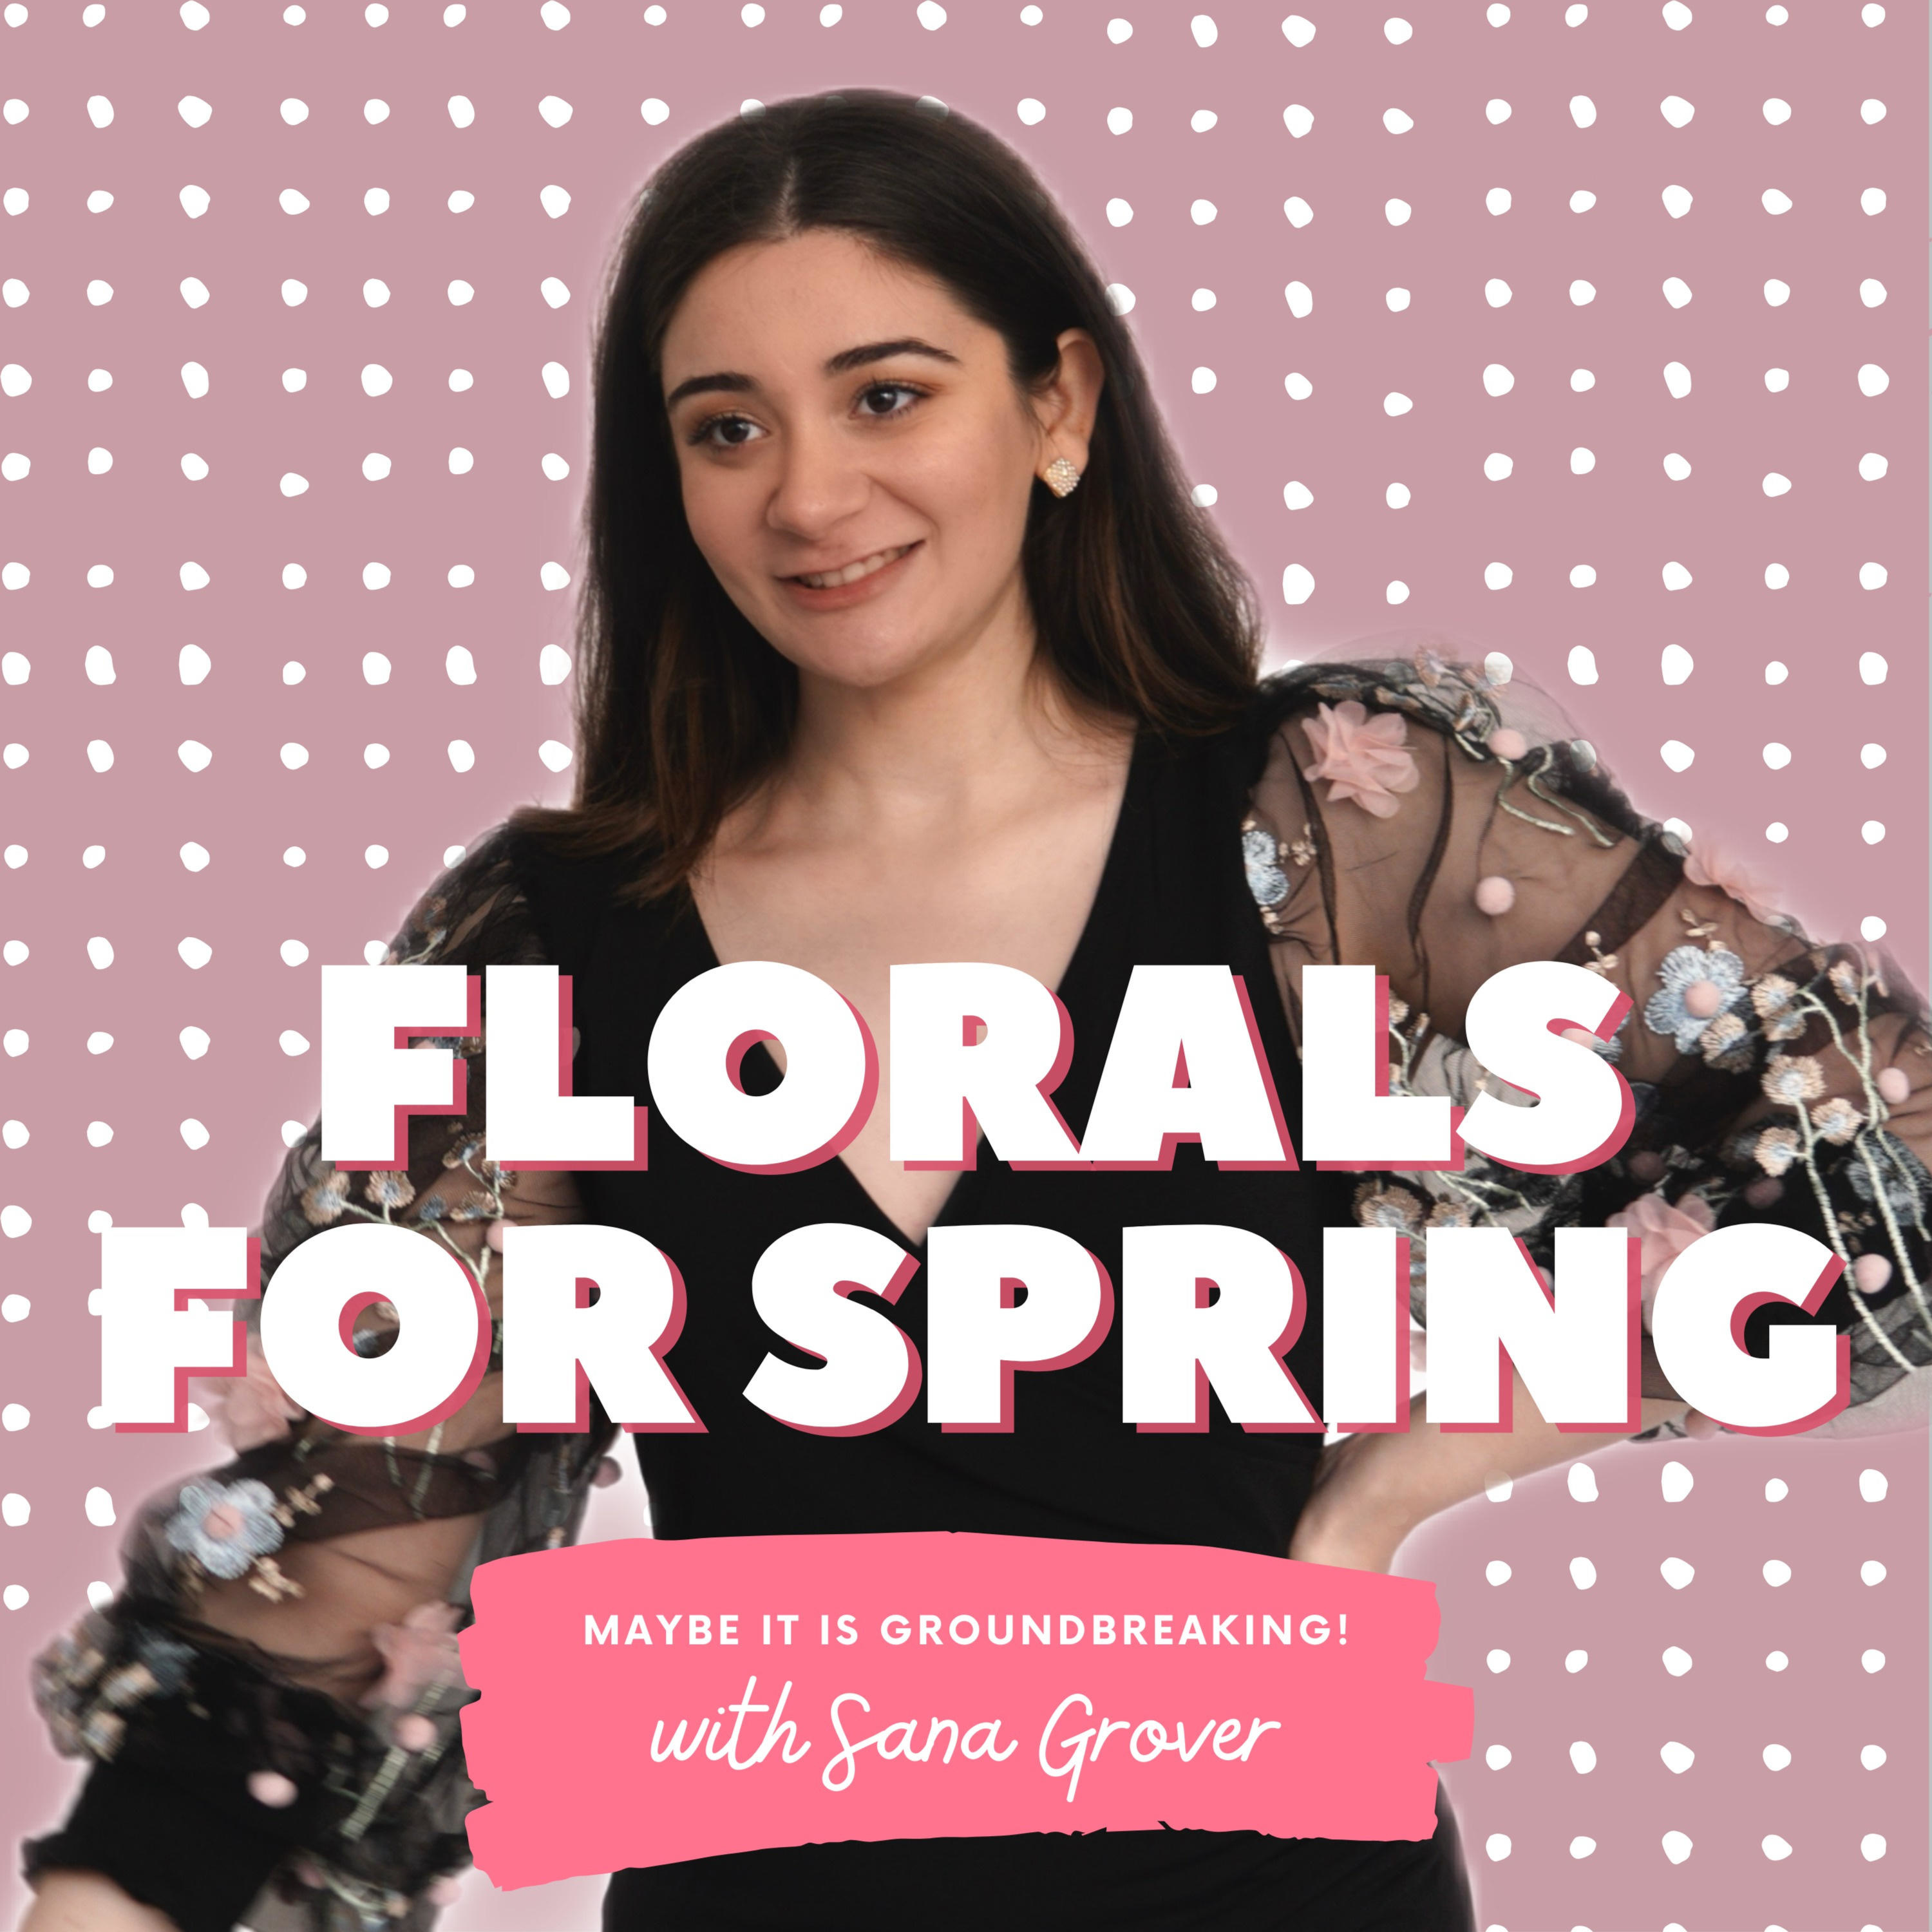 Florals For Spring with Sana Grover